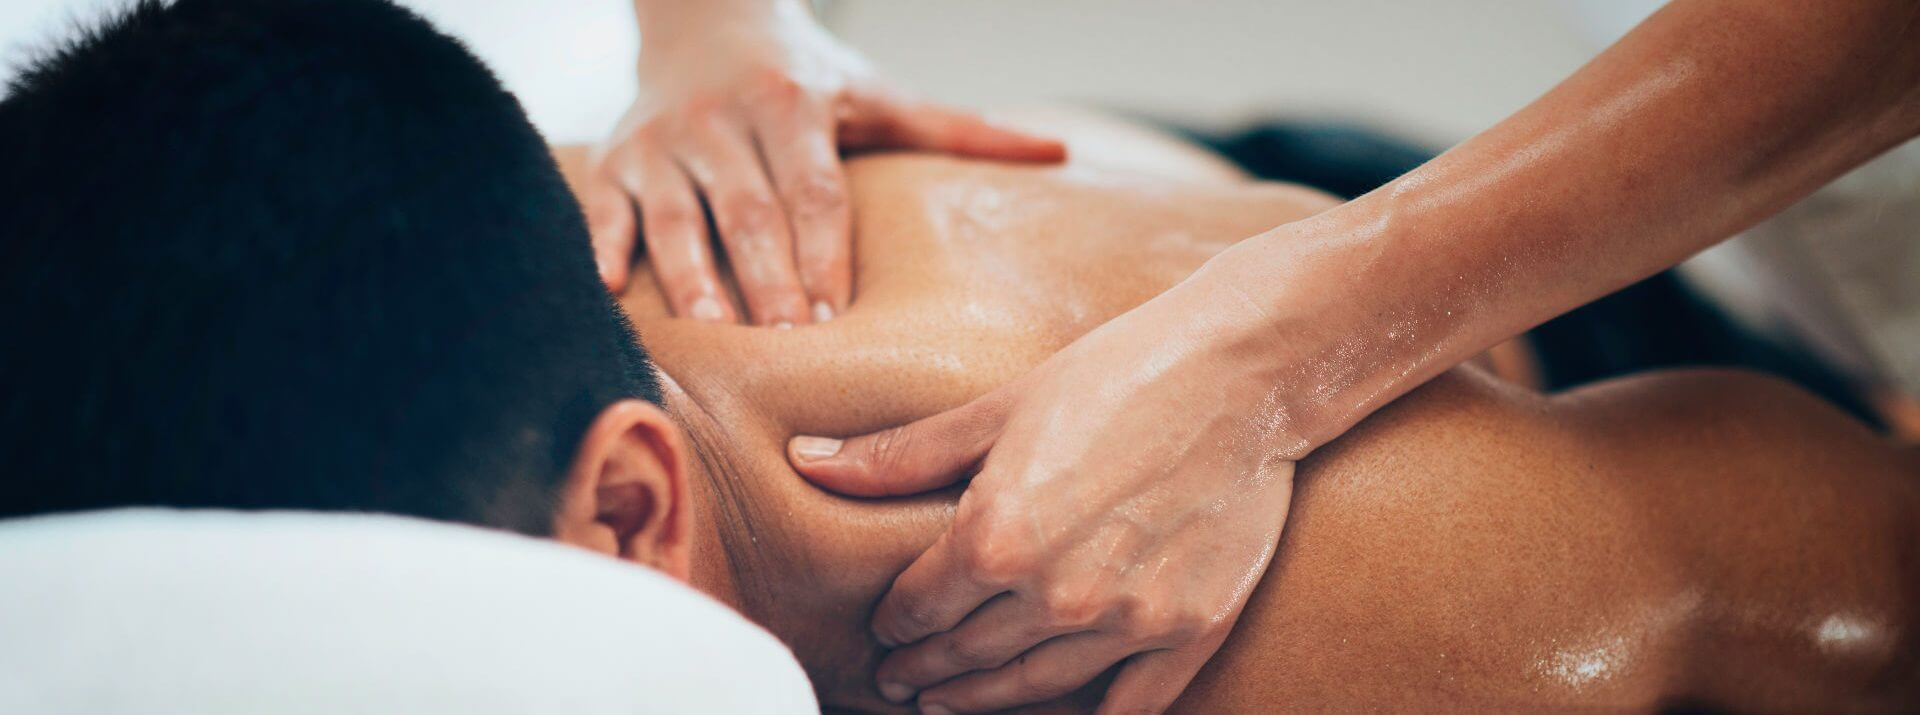 Massage can help restore flexibility and range of motion as well as increase overall wellness.